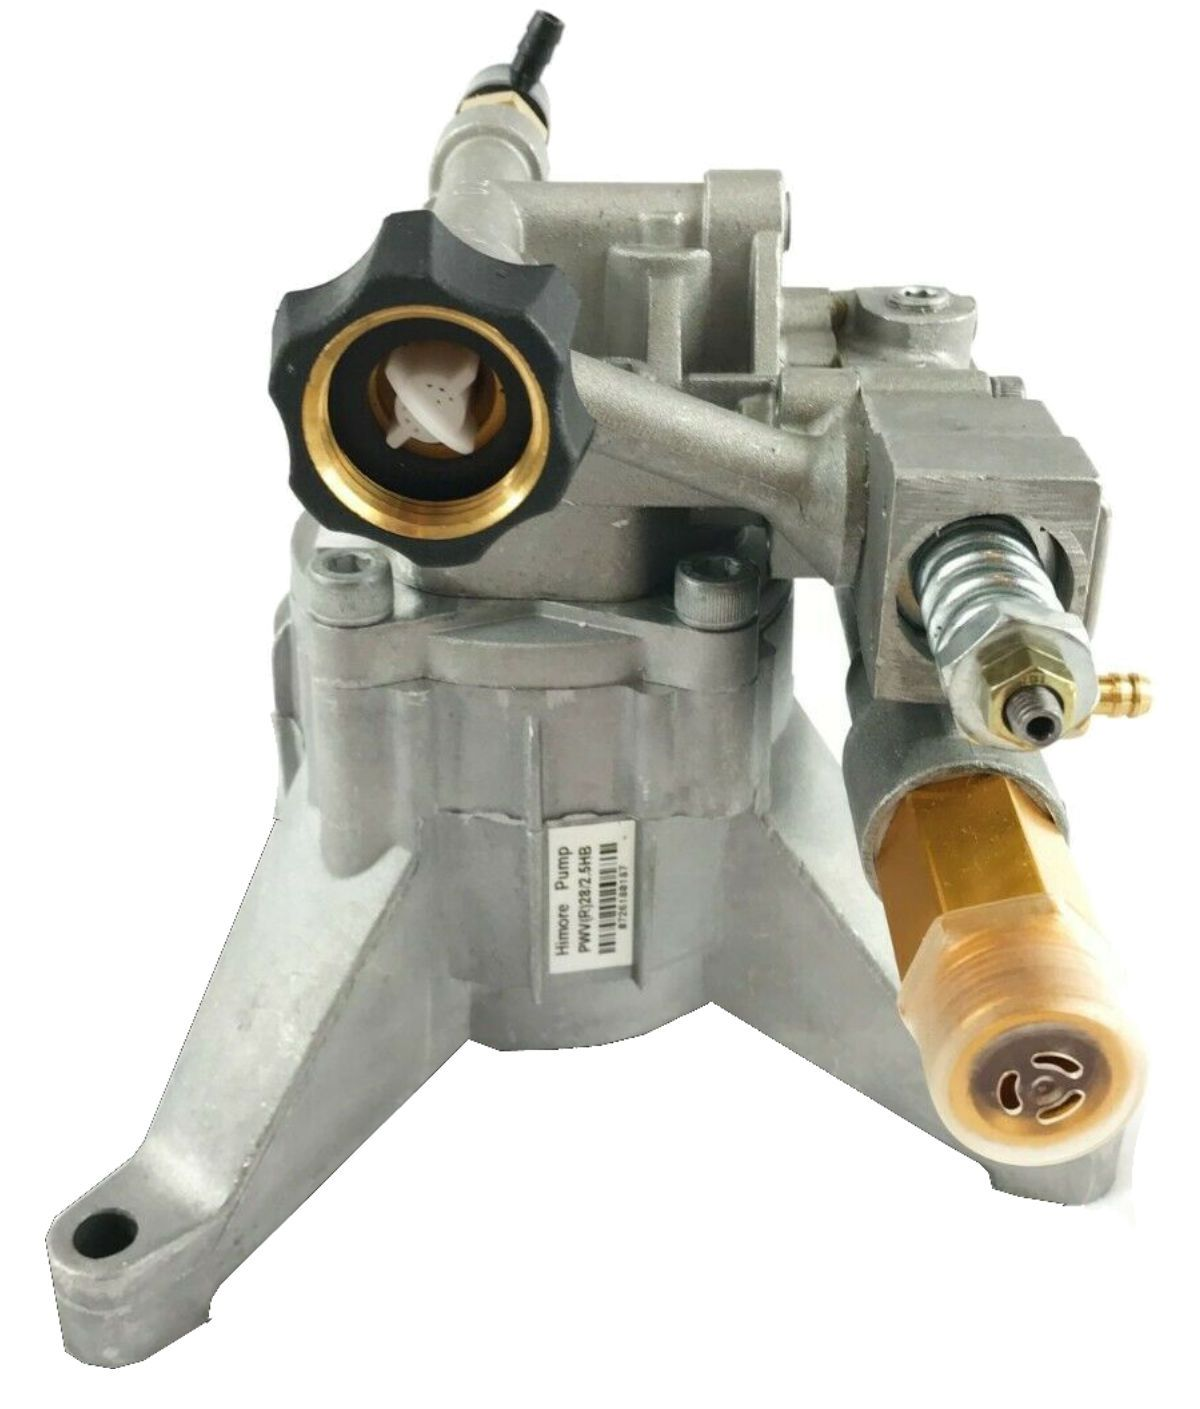 2700 PSI PRESSURE WASHER WATER PUMP Campbell Hausfeld PW2052VAI - AE-Power